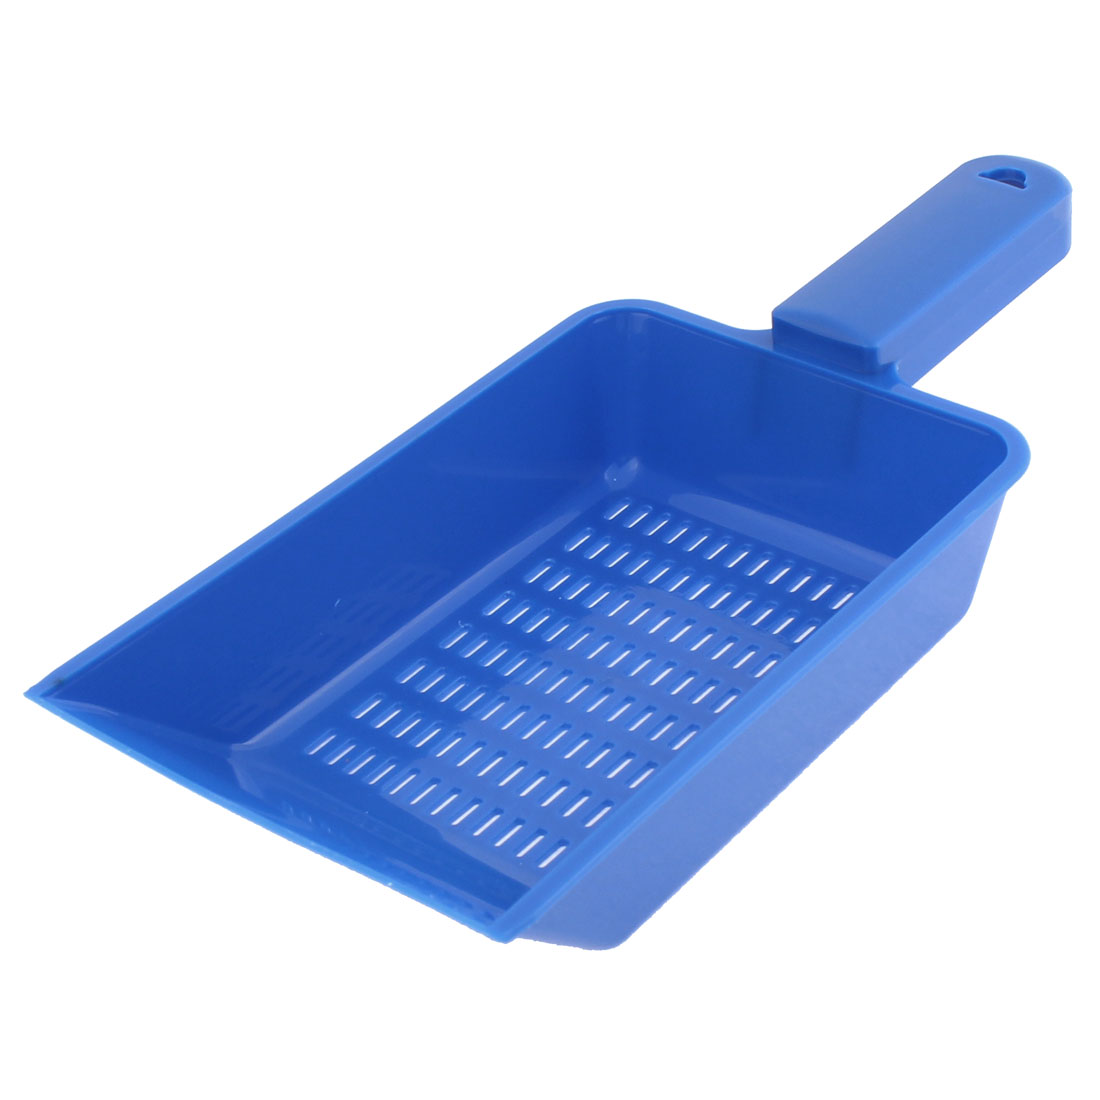 Aquarium Fish Tank Pool Blue Plastic Handle Sand Scraper Scoop Pan Shovel